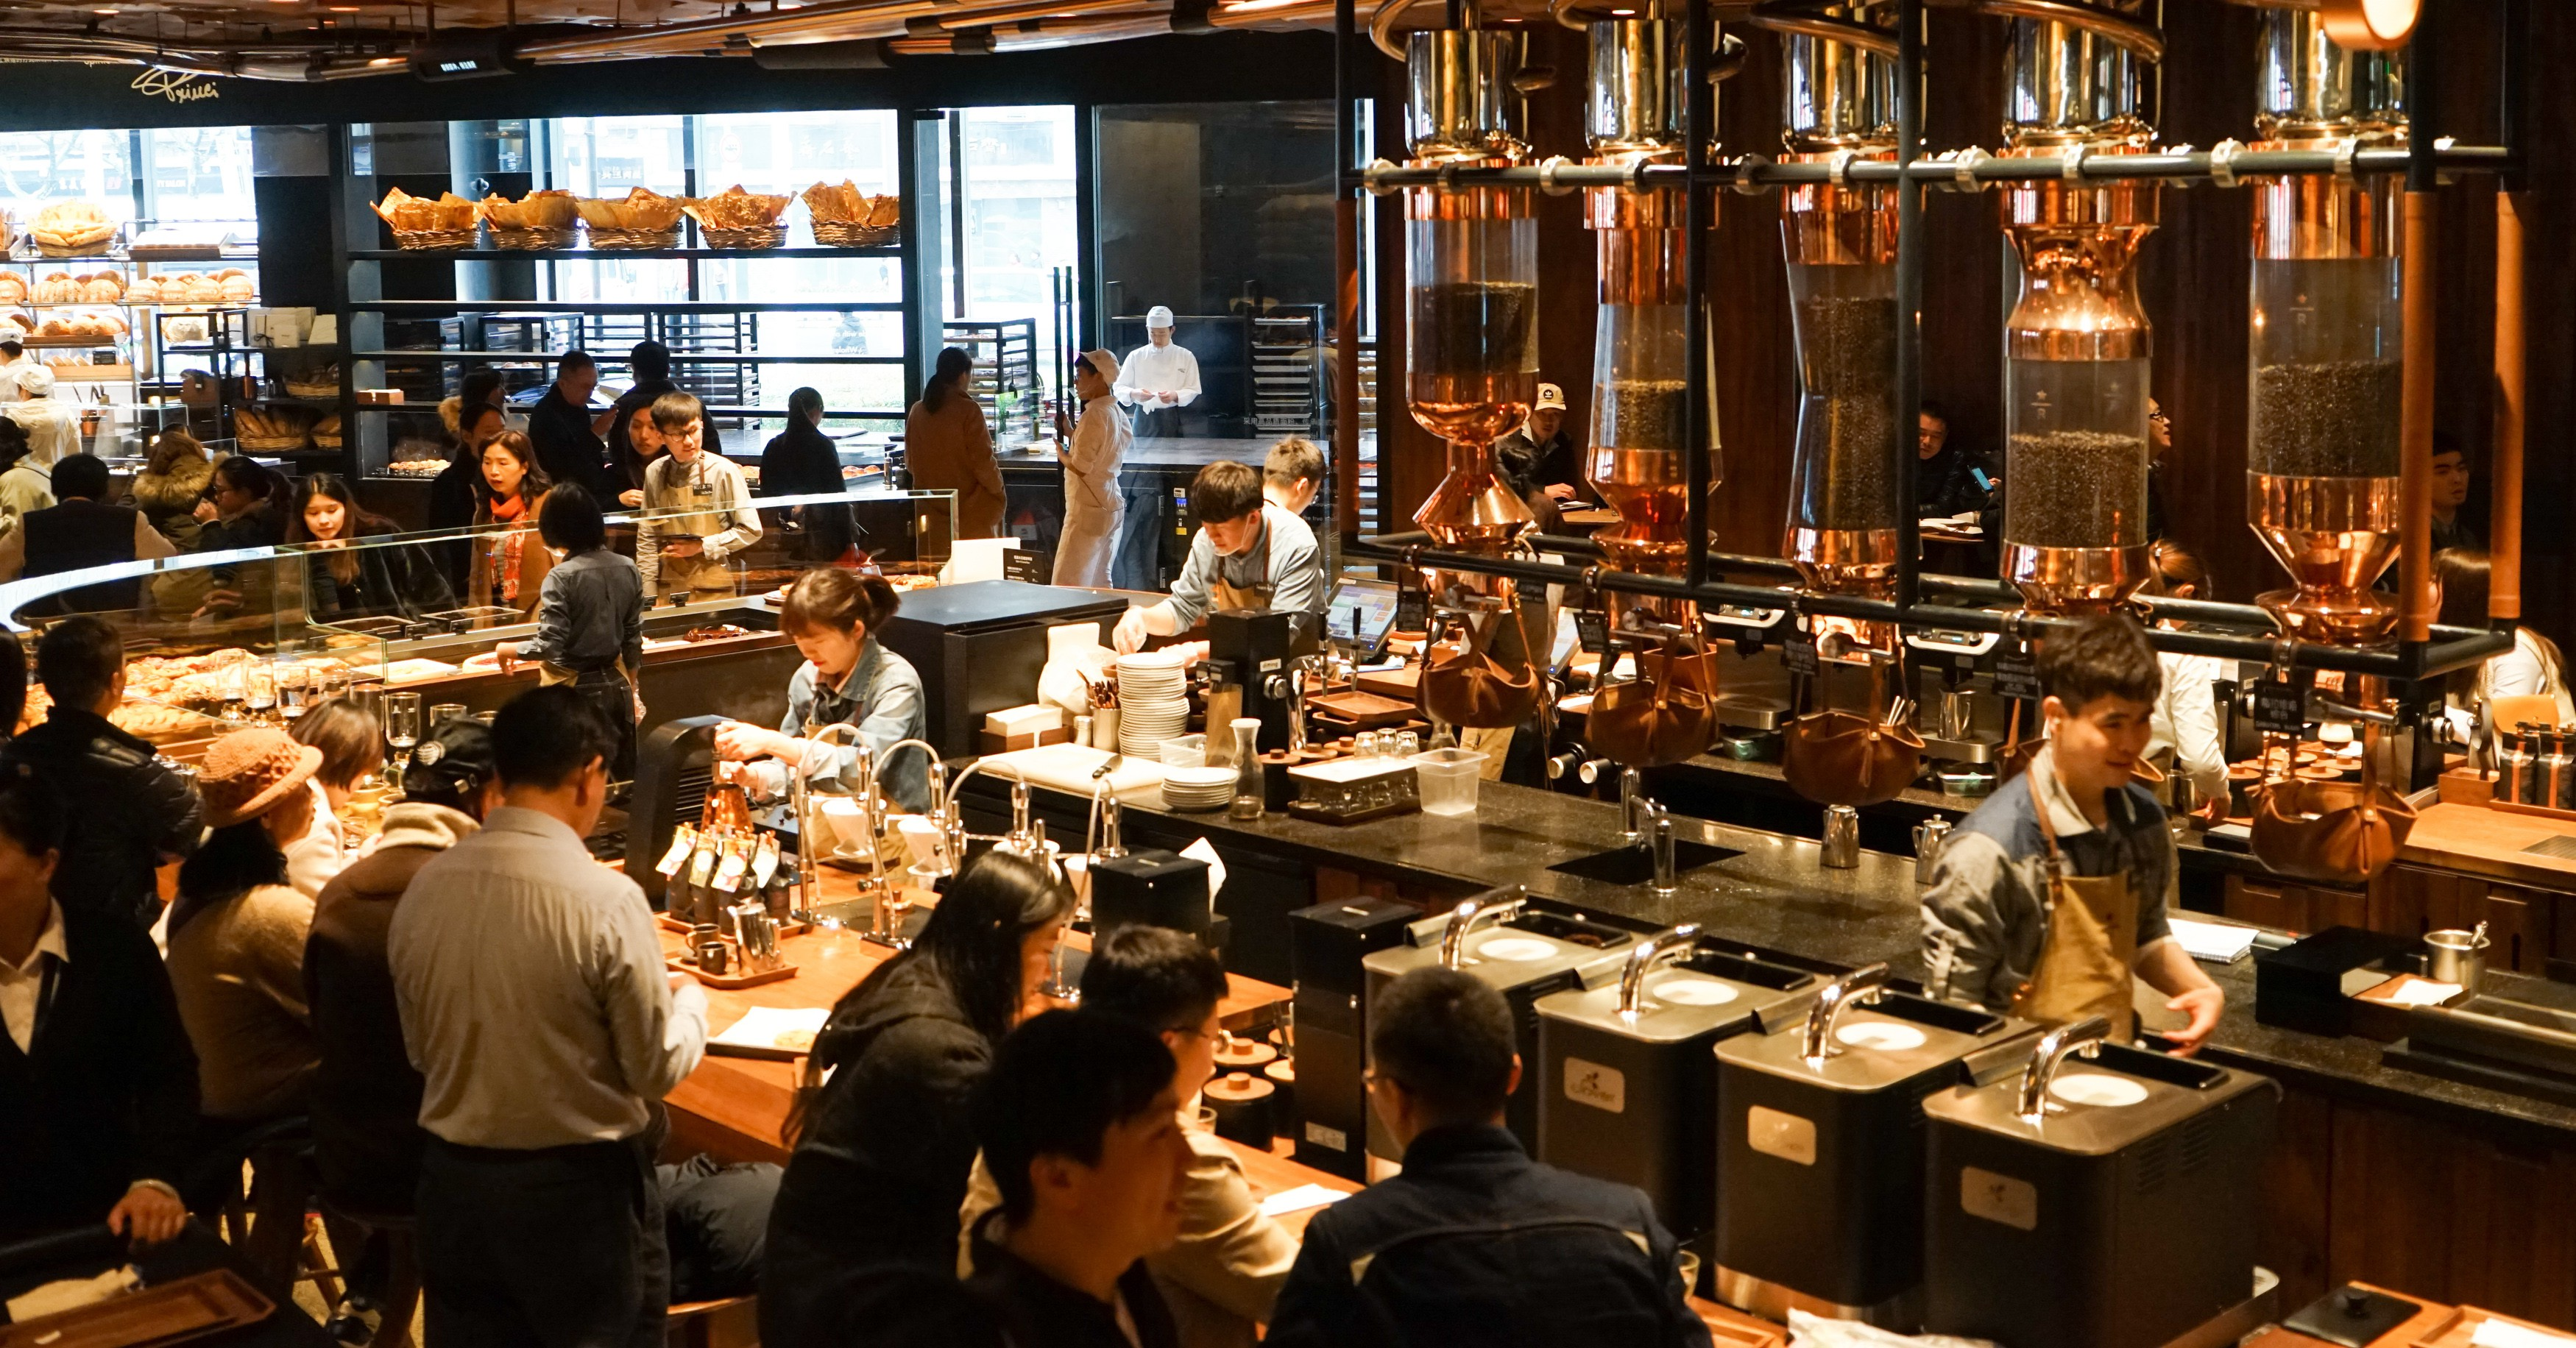 Shanghai is home to the largest Starbucks in the world